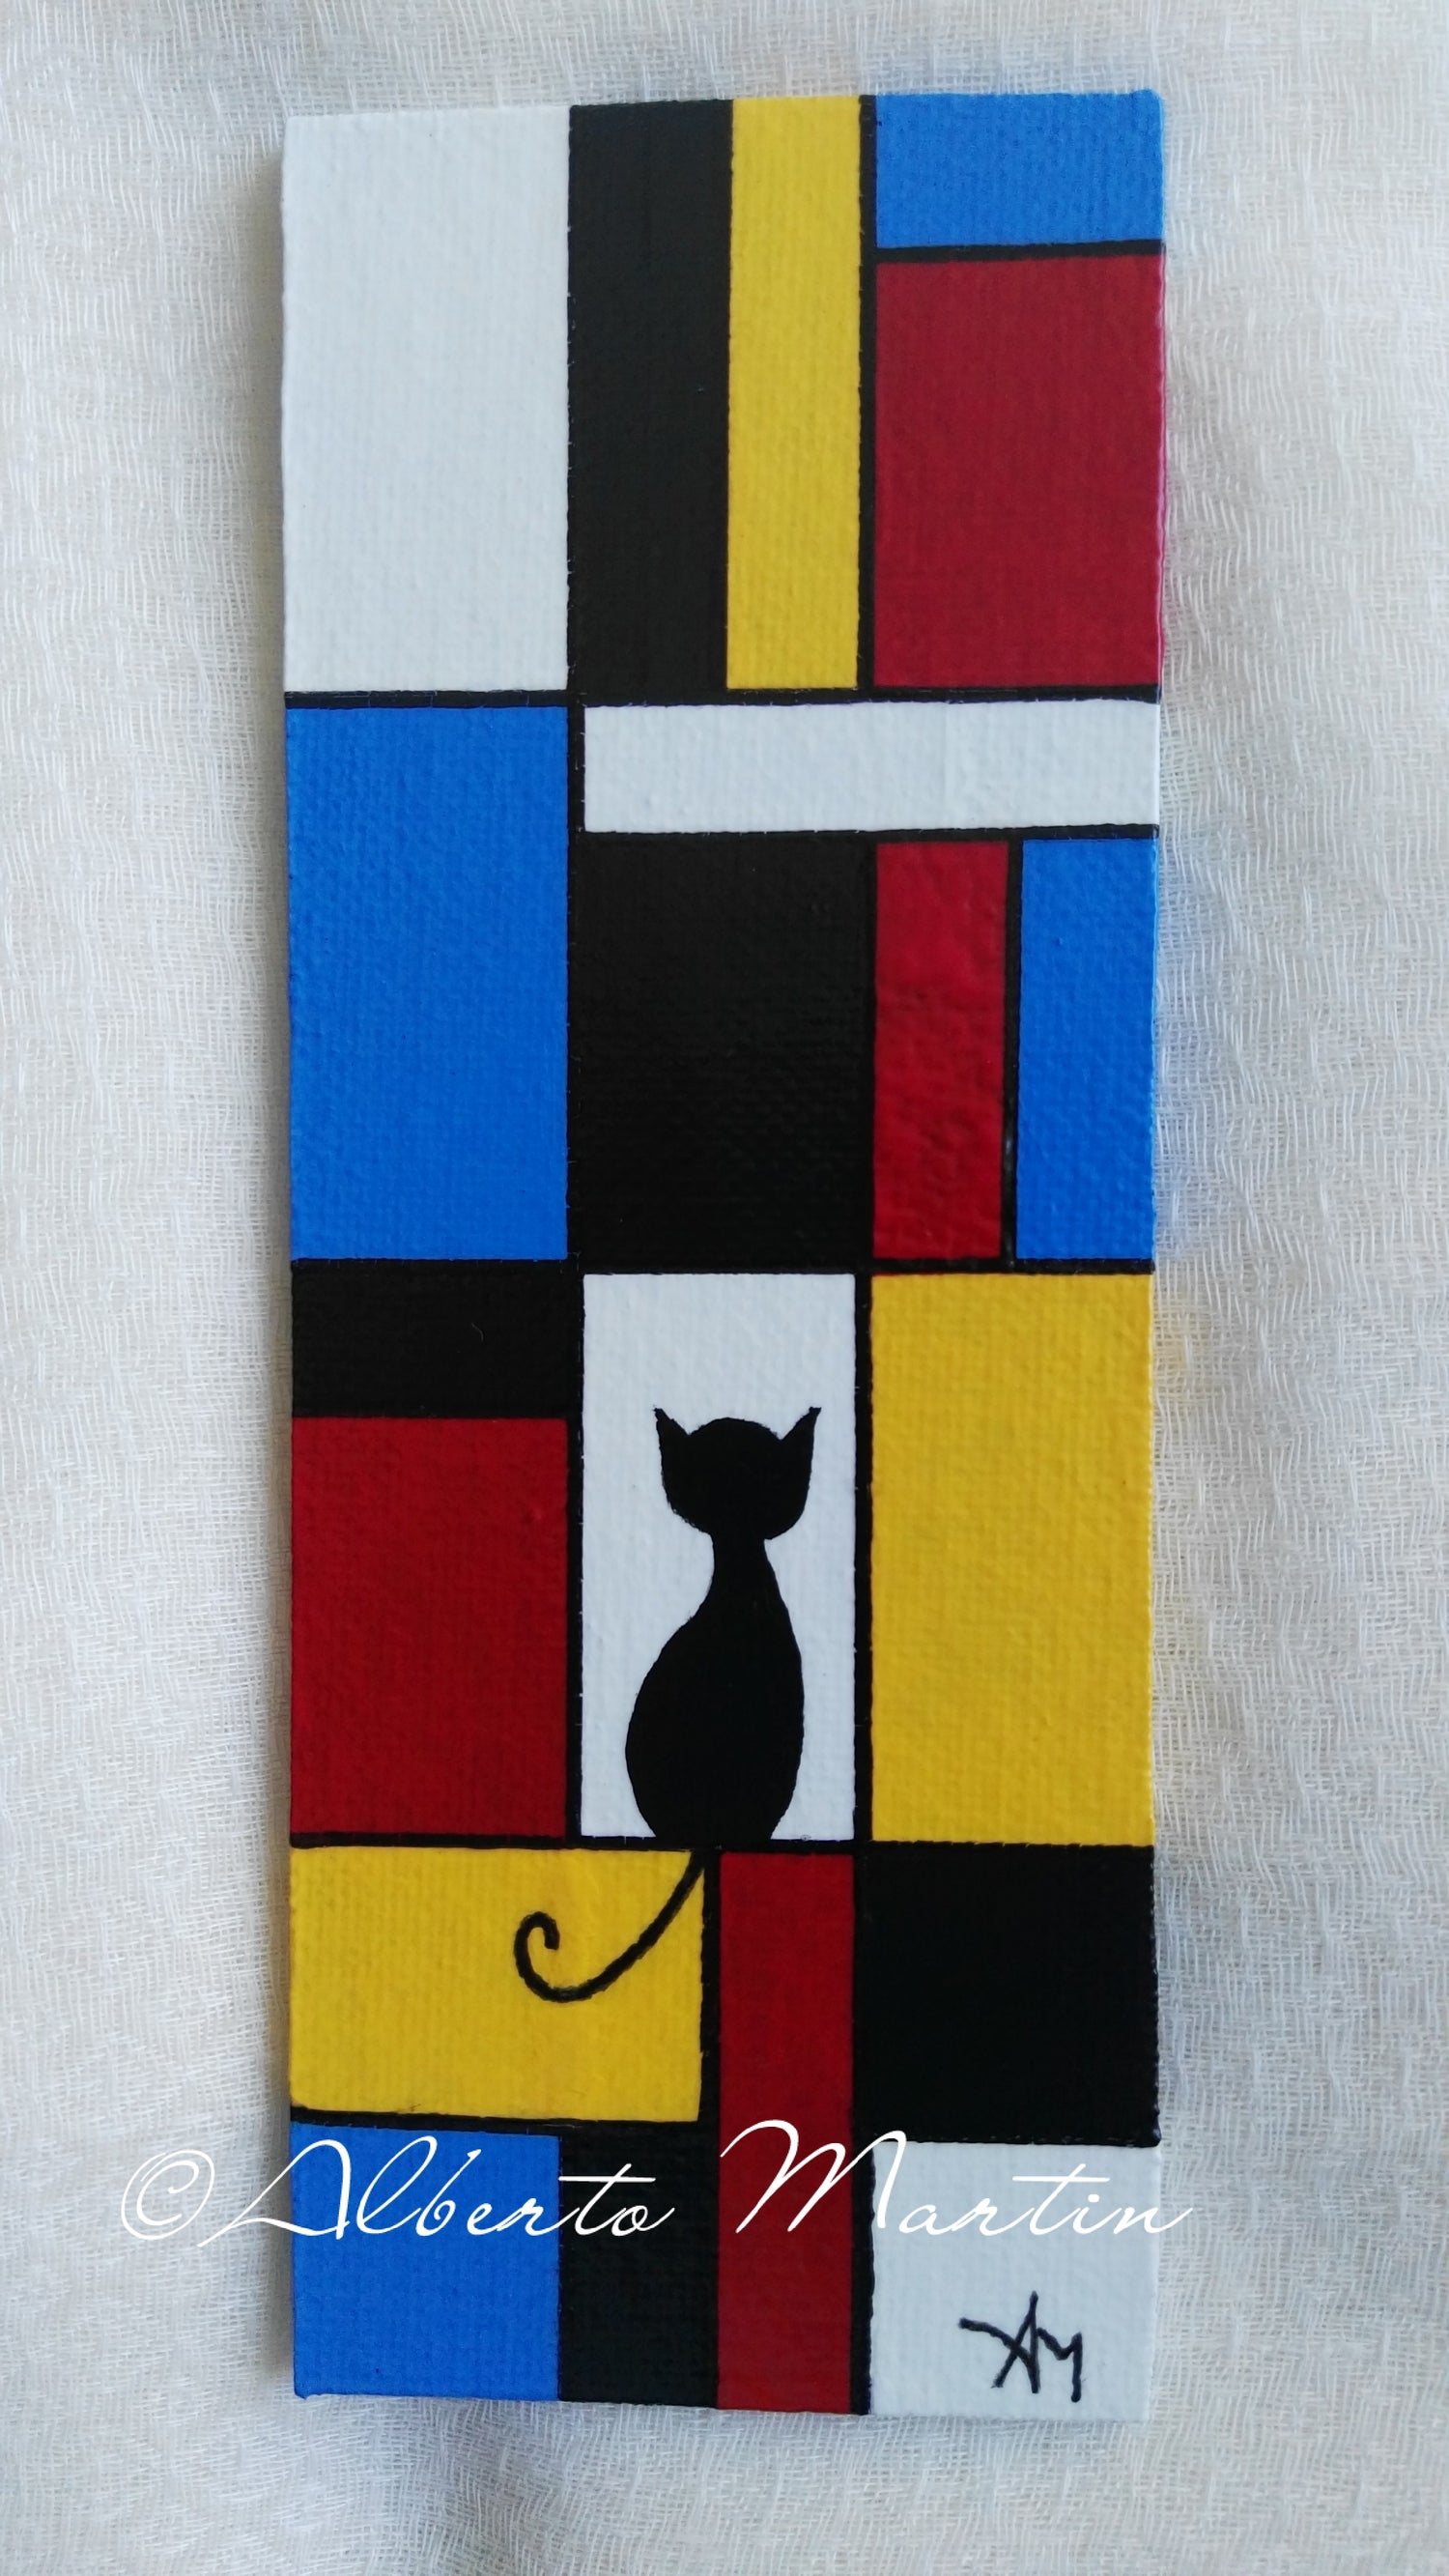 Image of Lonely cat Magnetic painted canvas - Mondrian art inspired- Geometric art by Alberto Martin